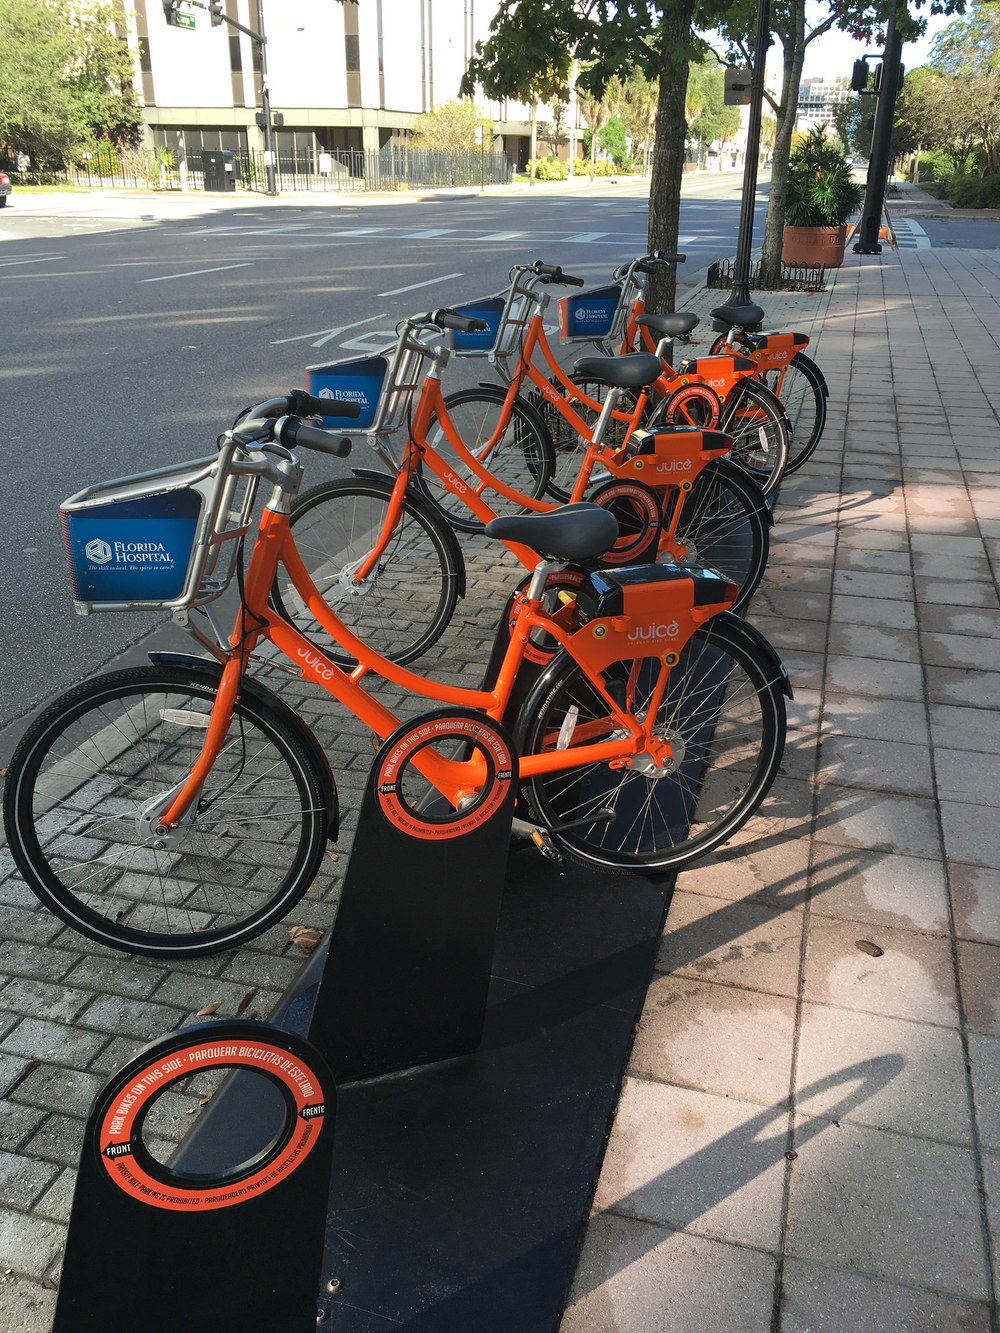 Juice Bike Station